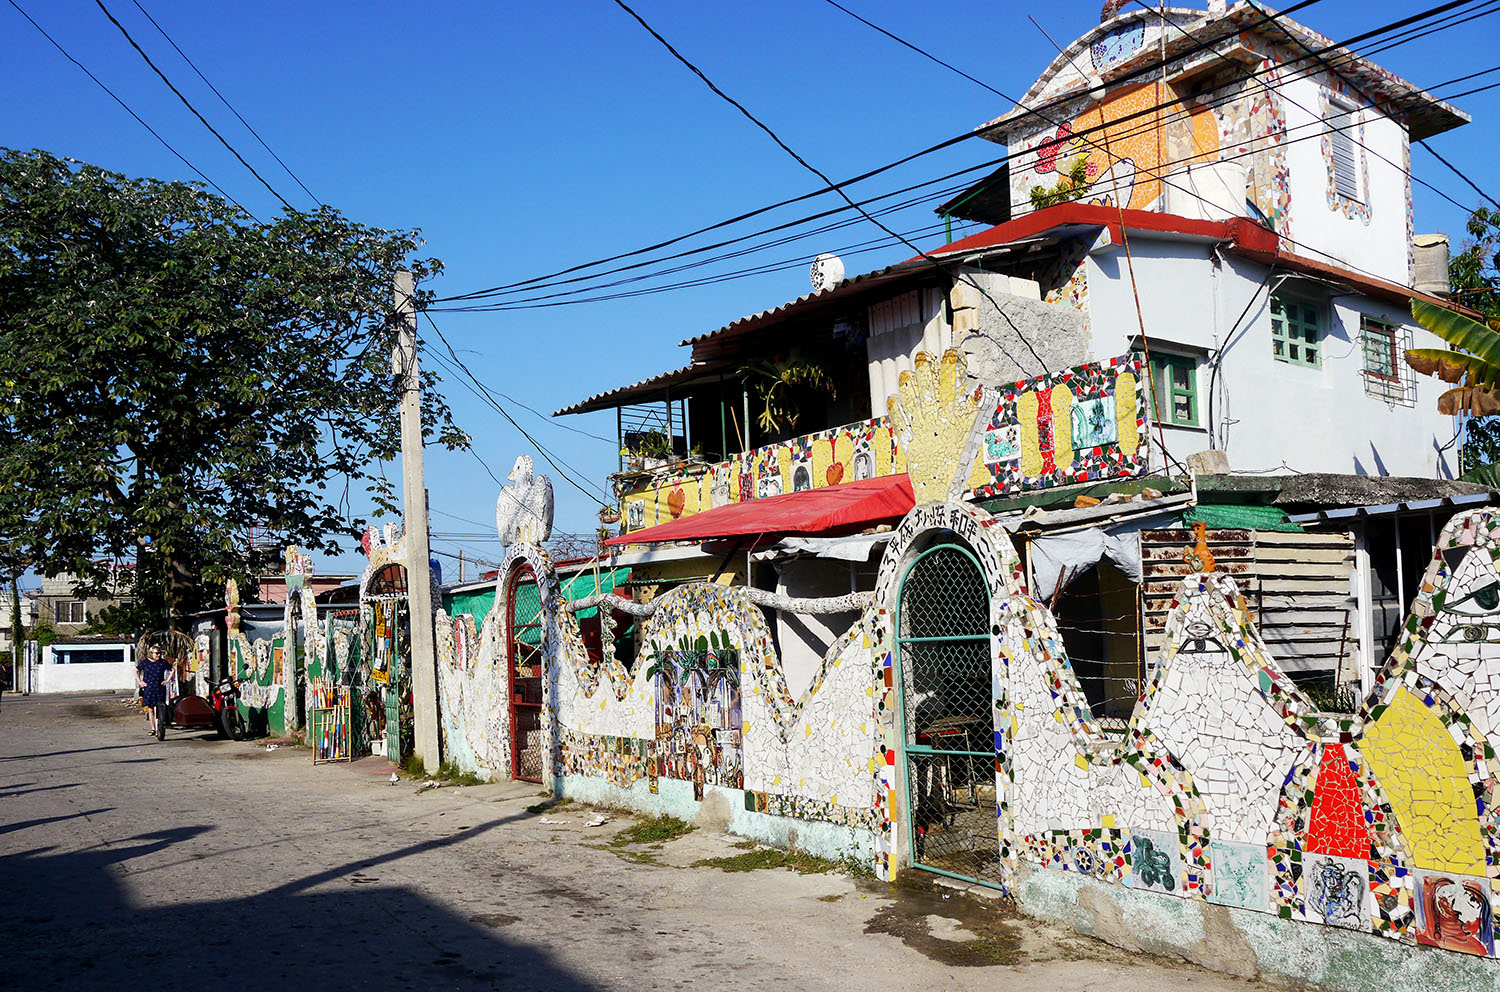 Street view of homes covered in mosaic tiles.